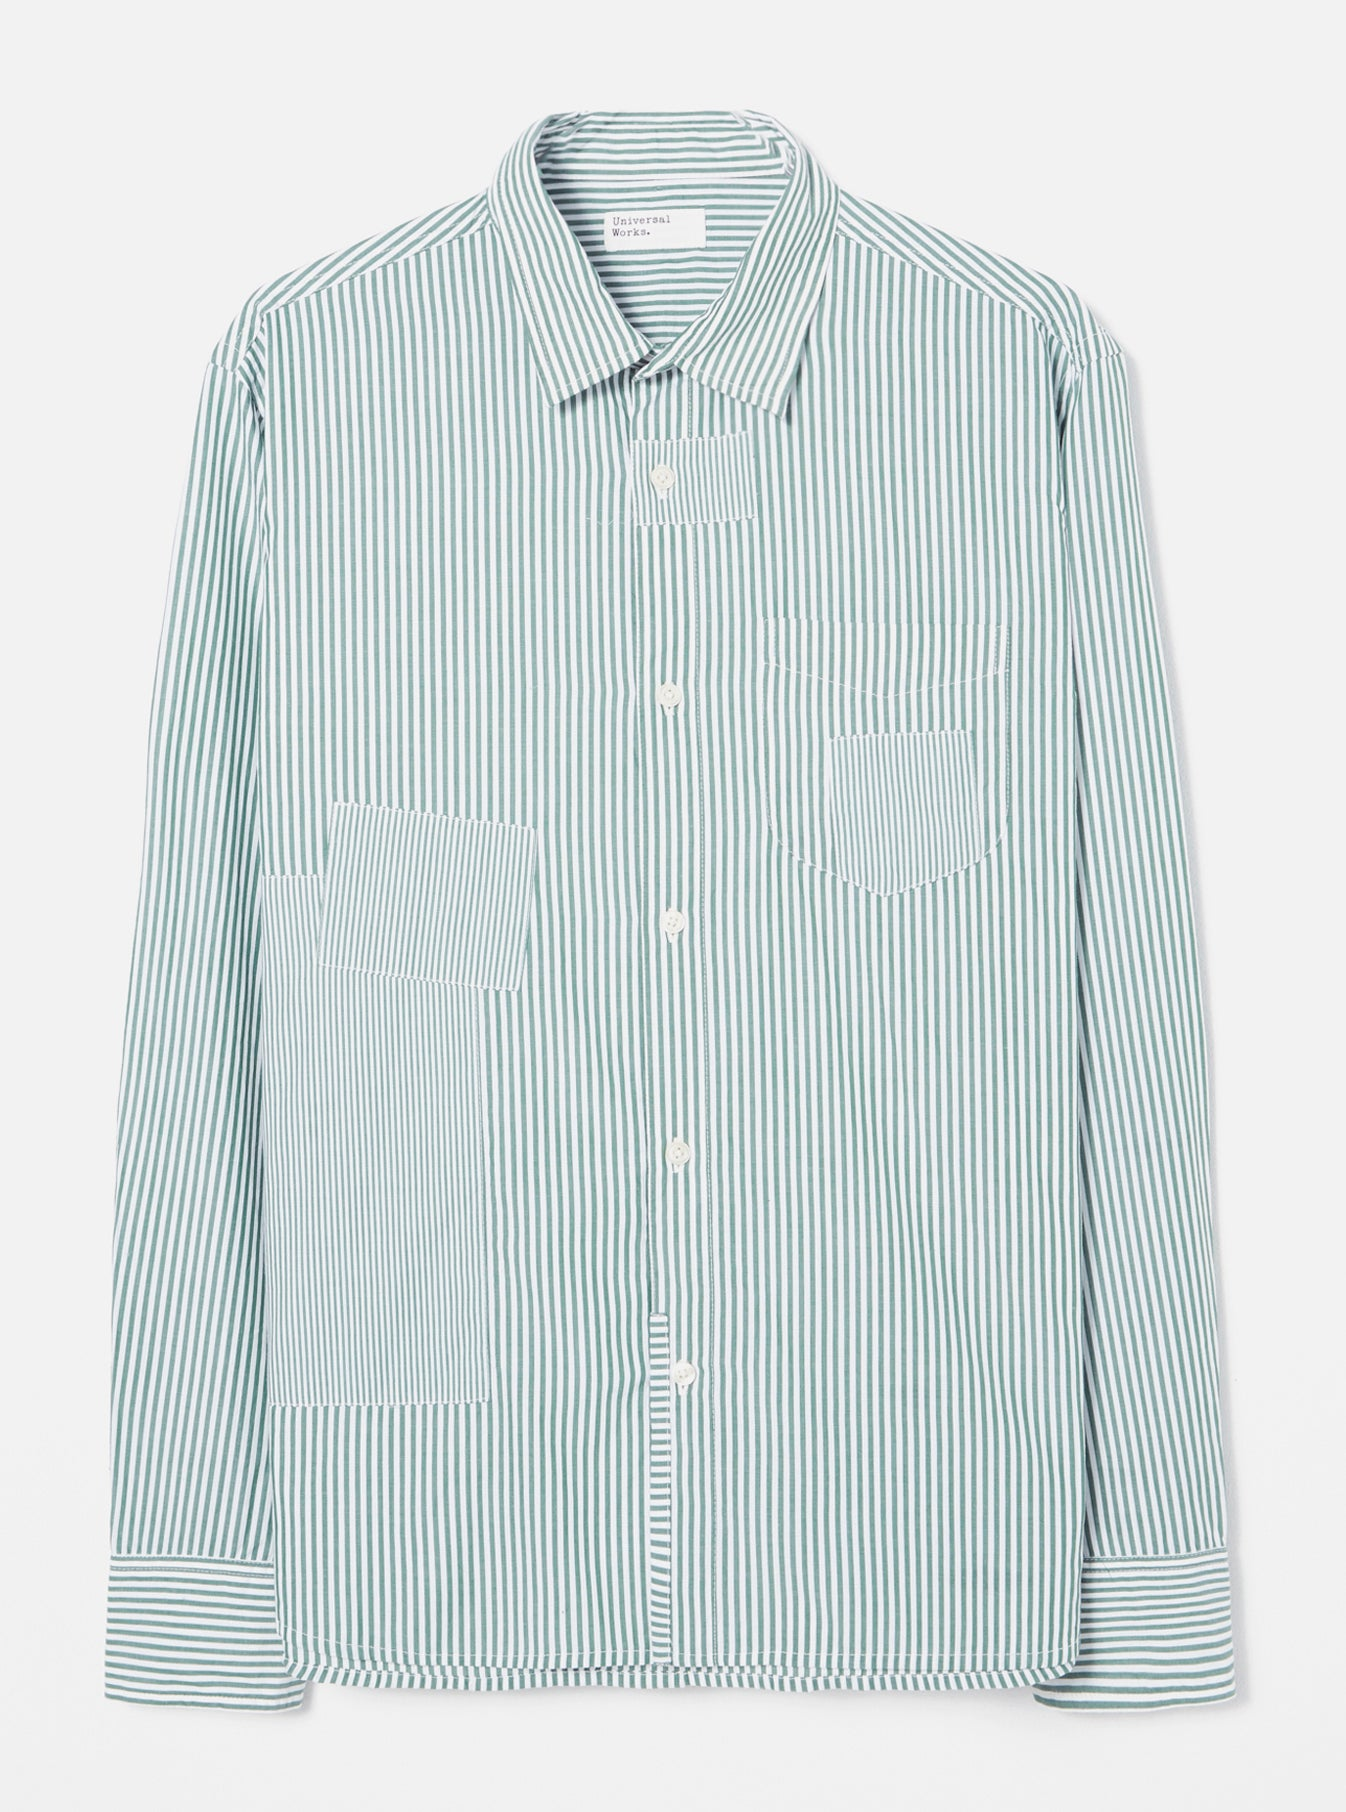 Universal Works Patch Shirt in Green Classic Stripes